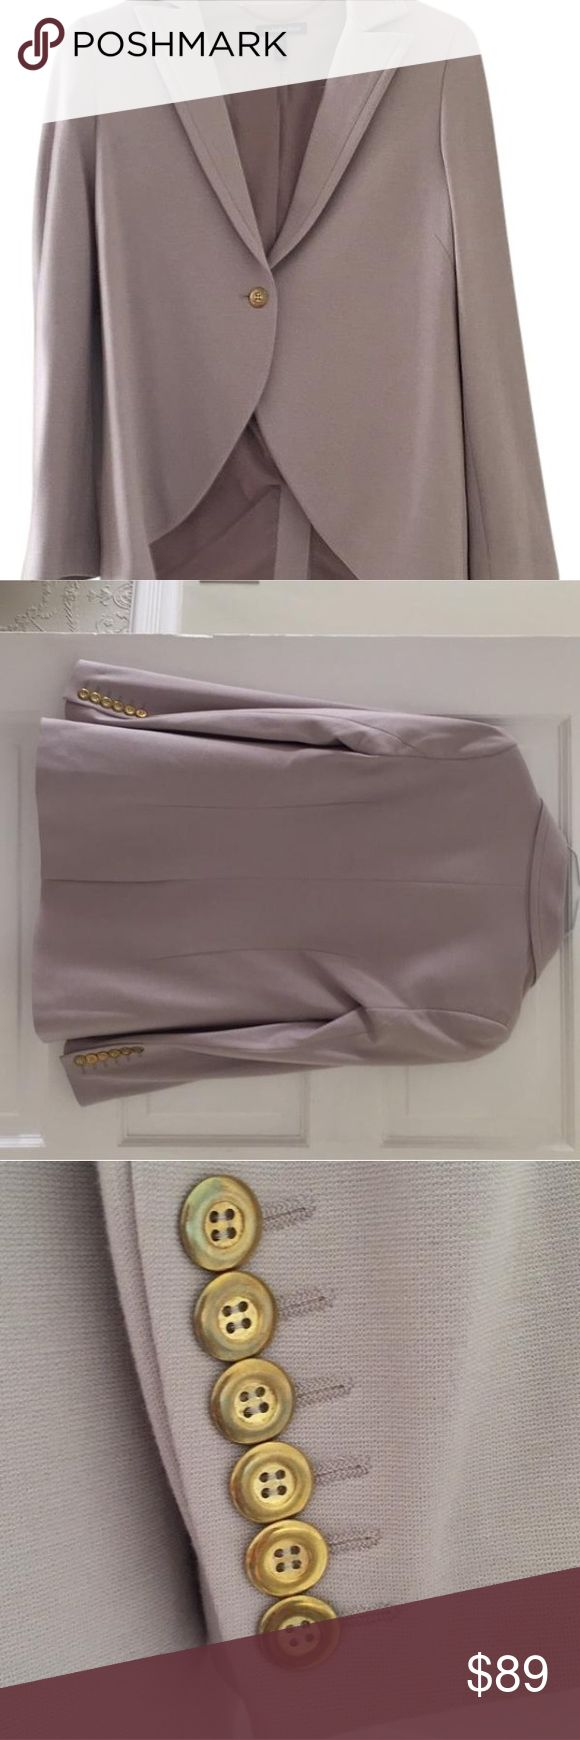 Isabella Oliver maternity blazer like new Maternity blazer in a lively greyish/ lilac color (to my eye). Brass buttons. No tags but never worn.  It is a size 1 - see the sizing chart from the designer's website (photo attached) - equivalent to a US size 4. Isabella Oliver Jackets & Coats Blazers